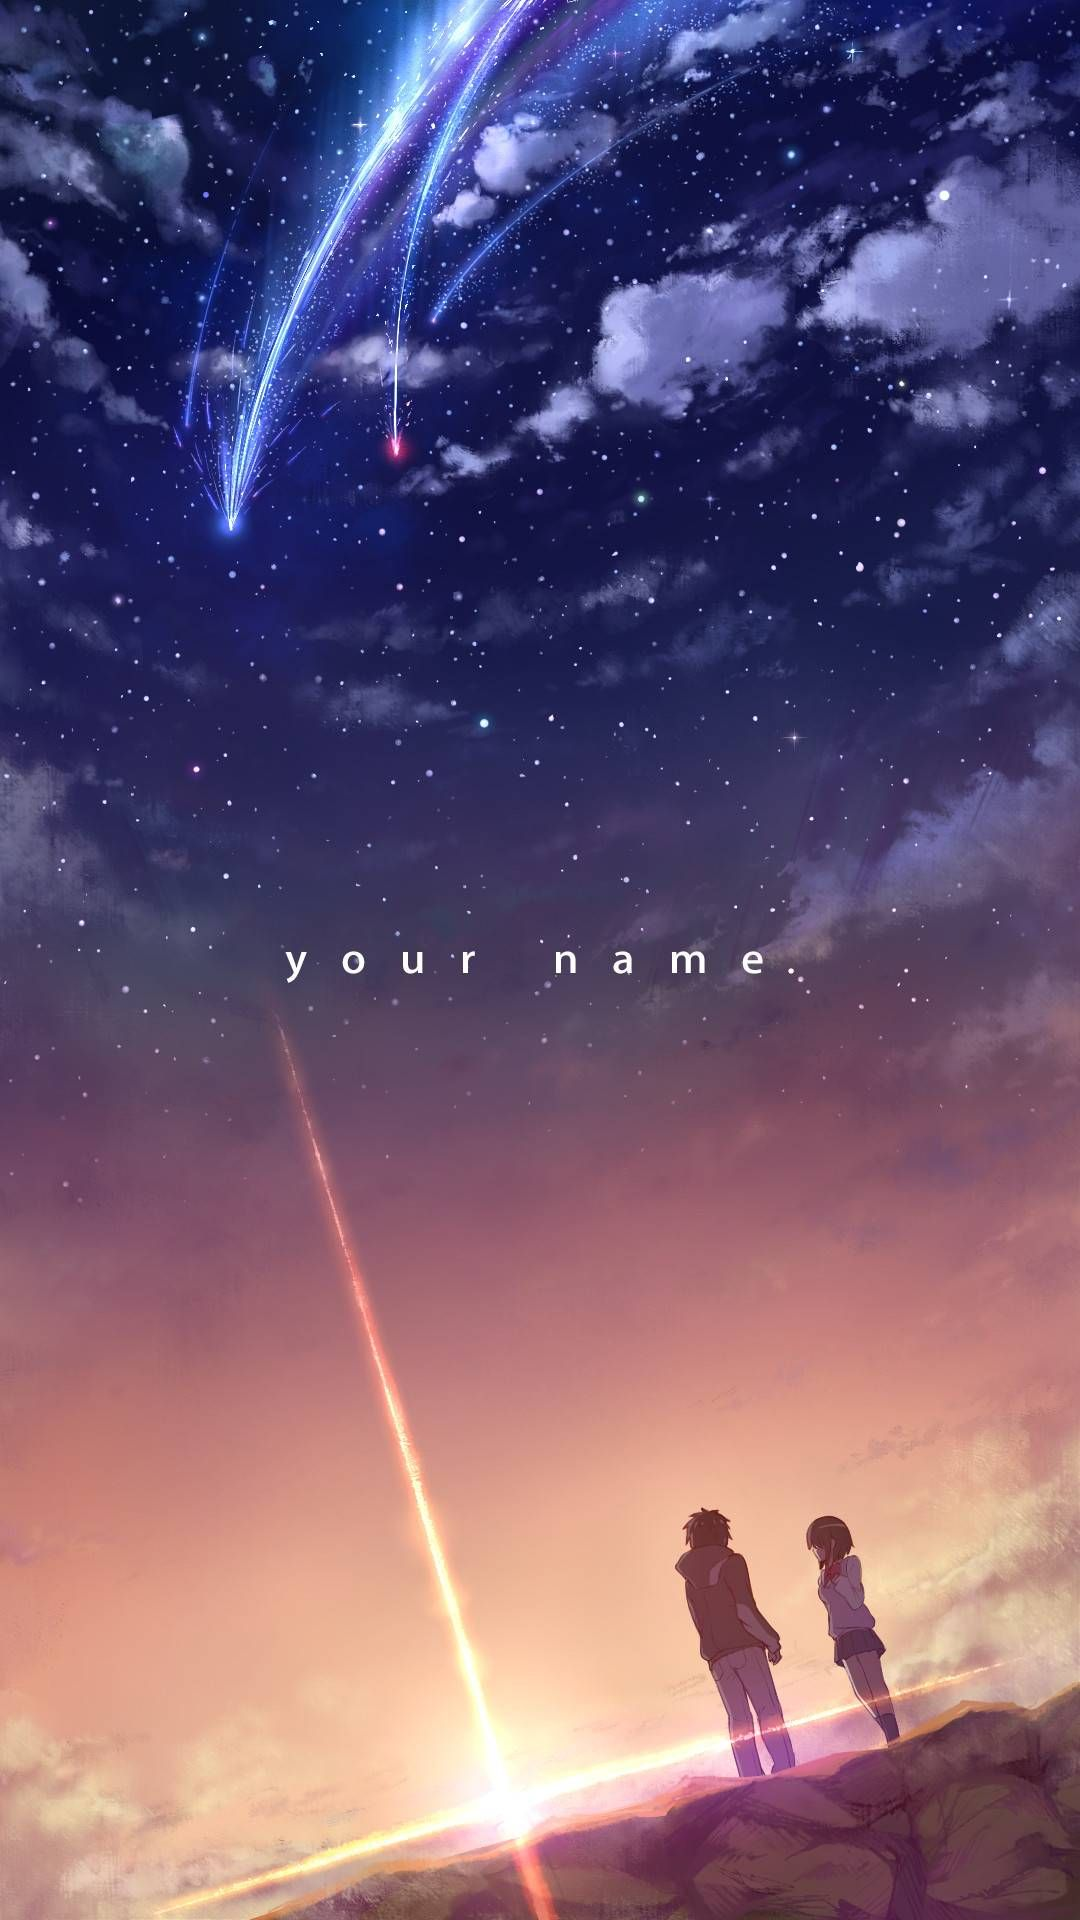 Your Name Kimi No Na Wa Kimi No Na Wa Wallpaper Kimi No Na Wa